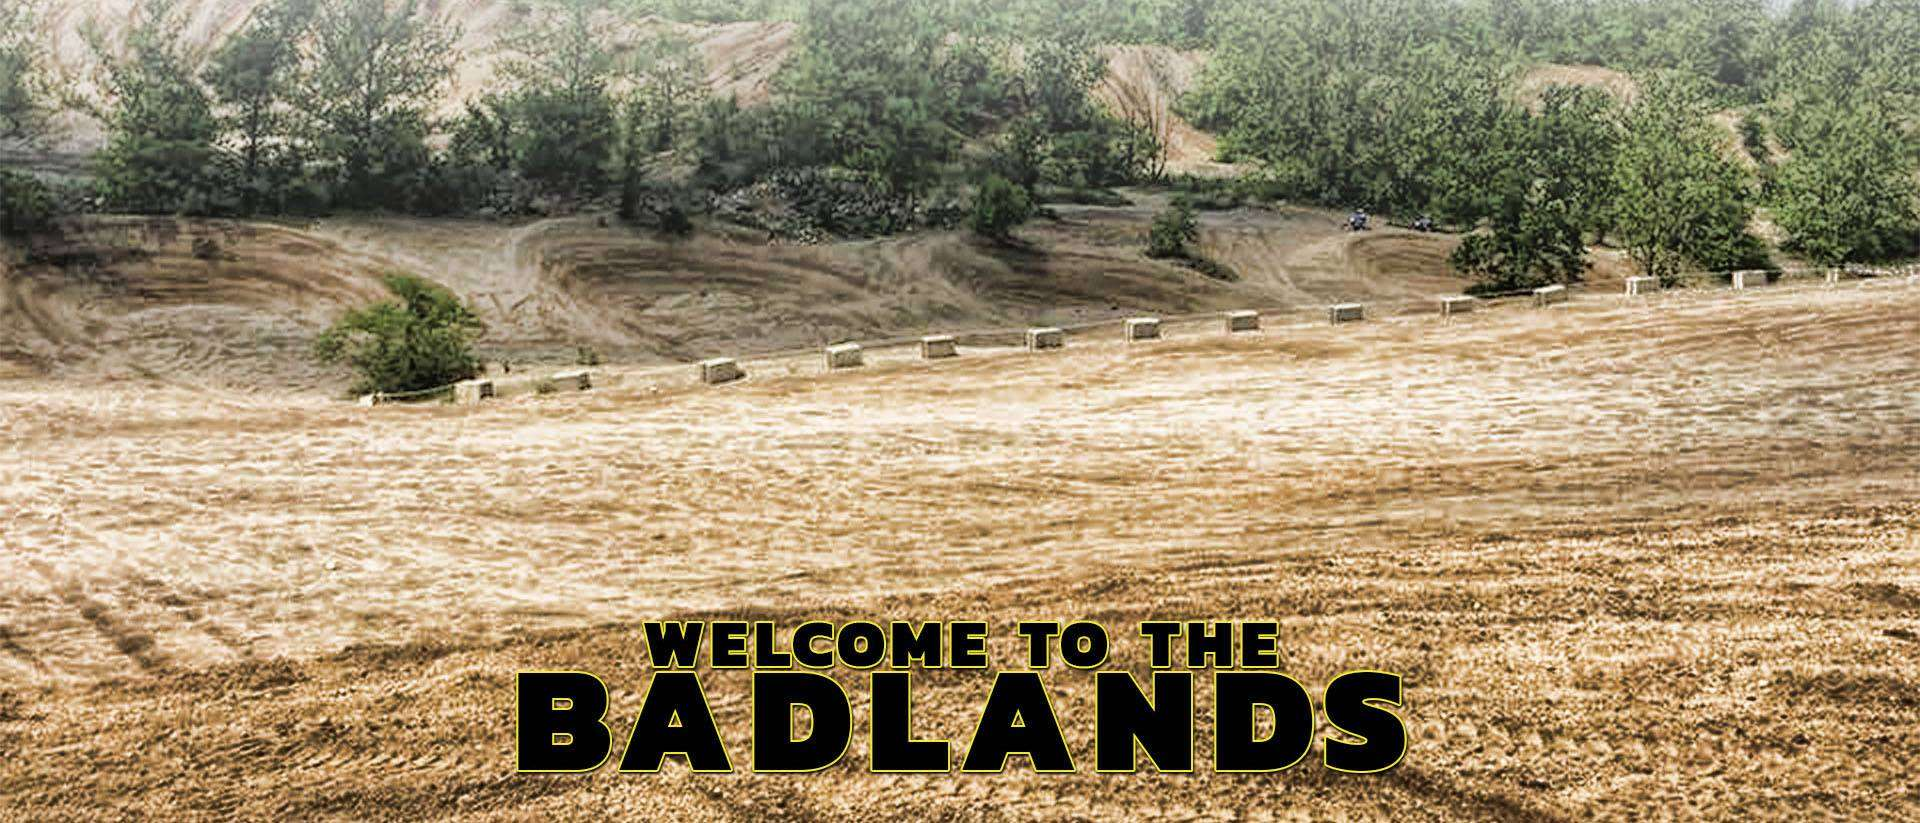 Badlands Off Road Park is located in Attica, IN | Welcome to the Badlands!